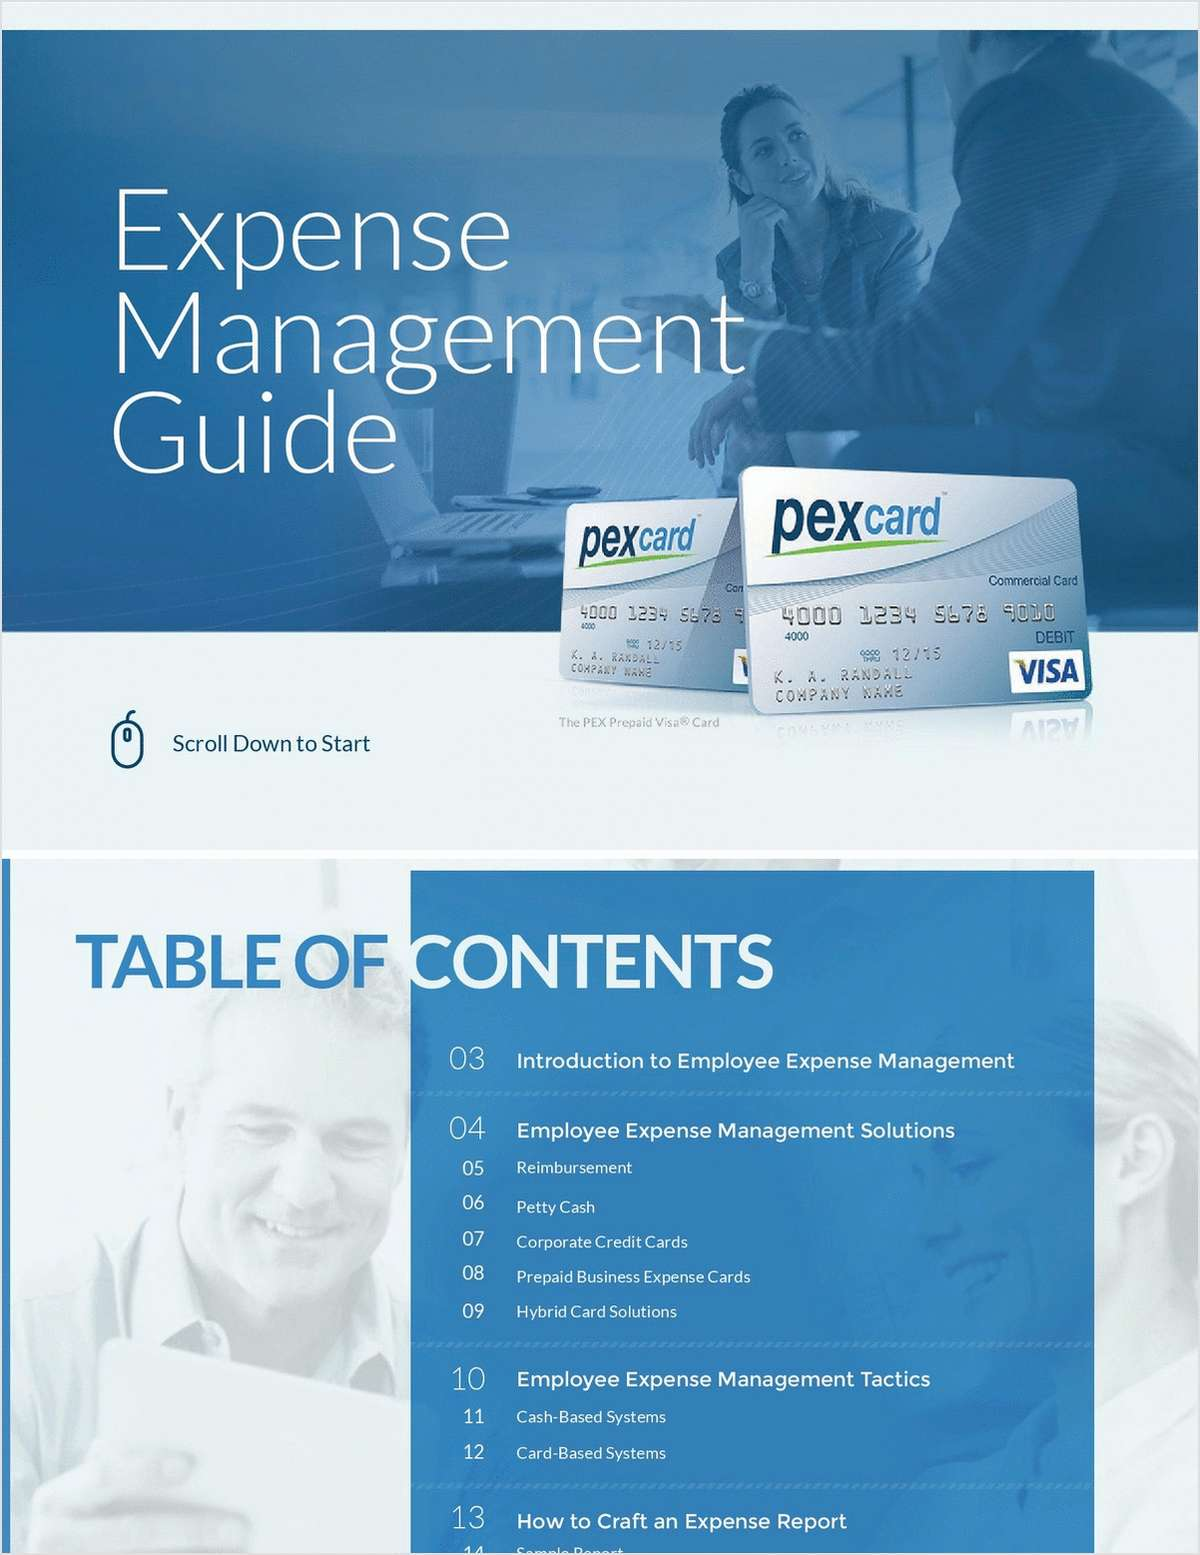 Streamline Your Expense Management Process & Reduce Overhead